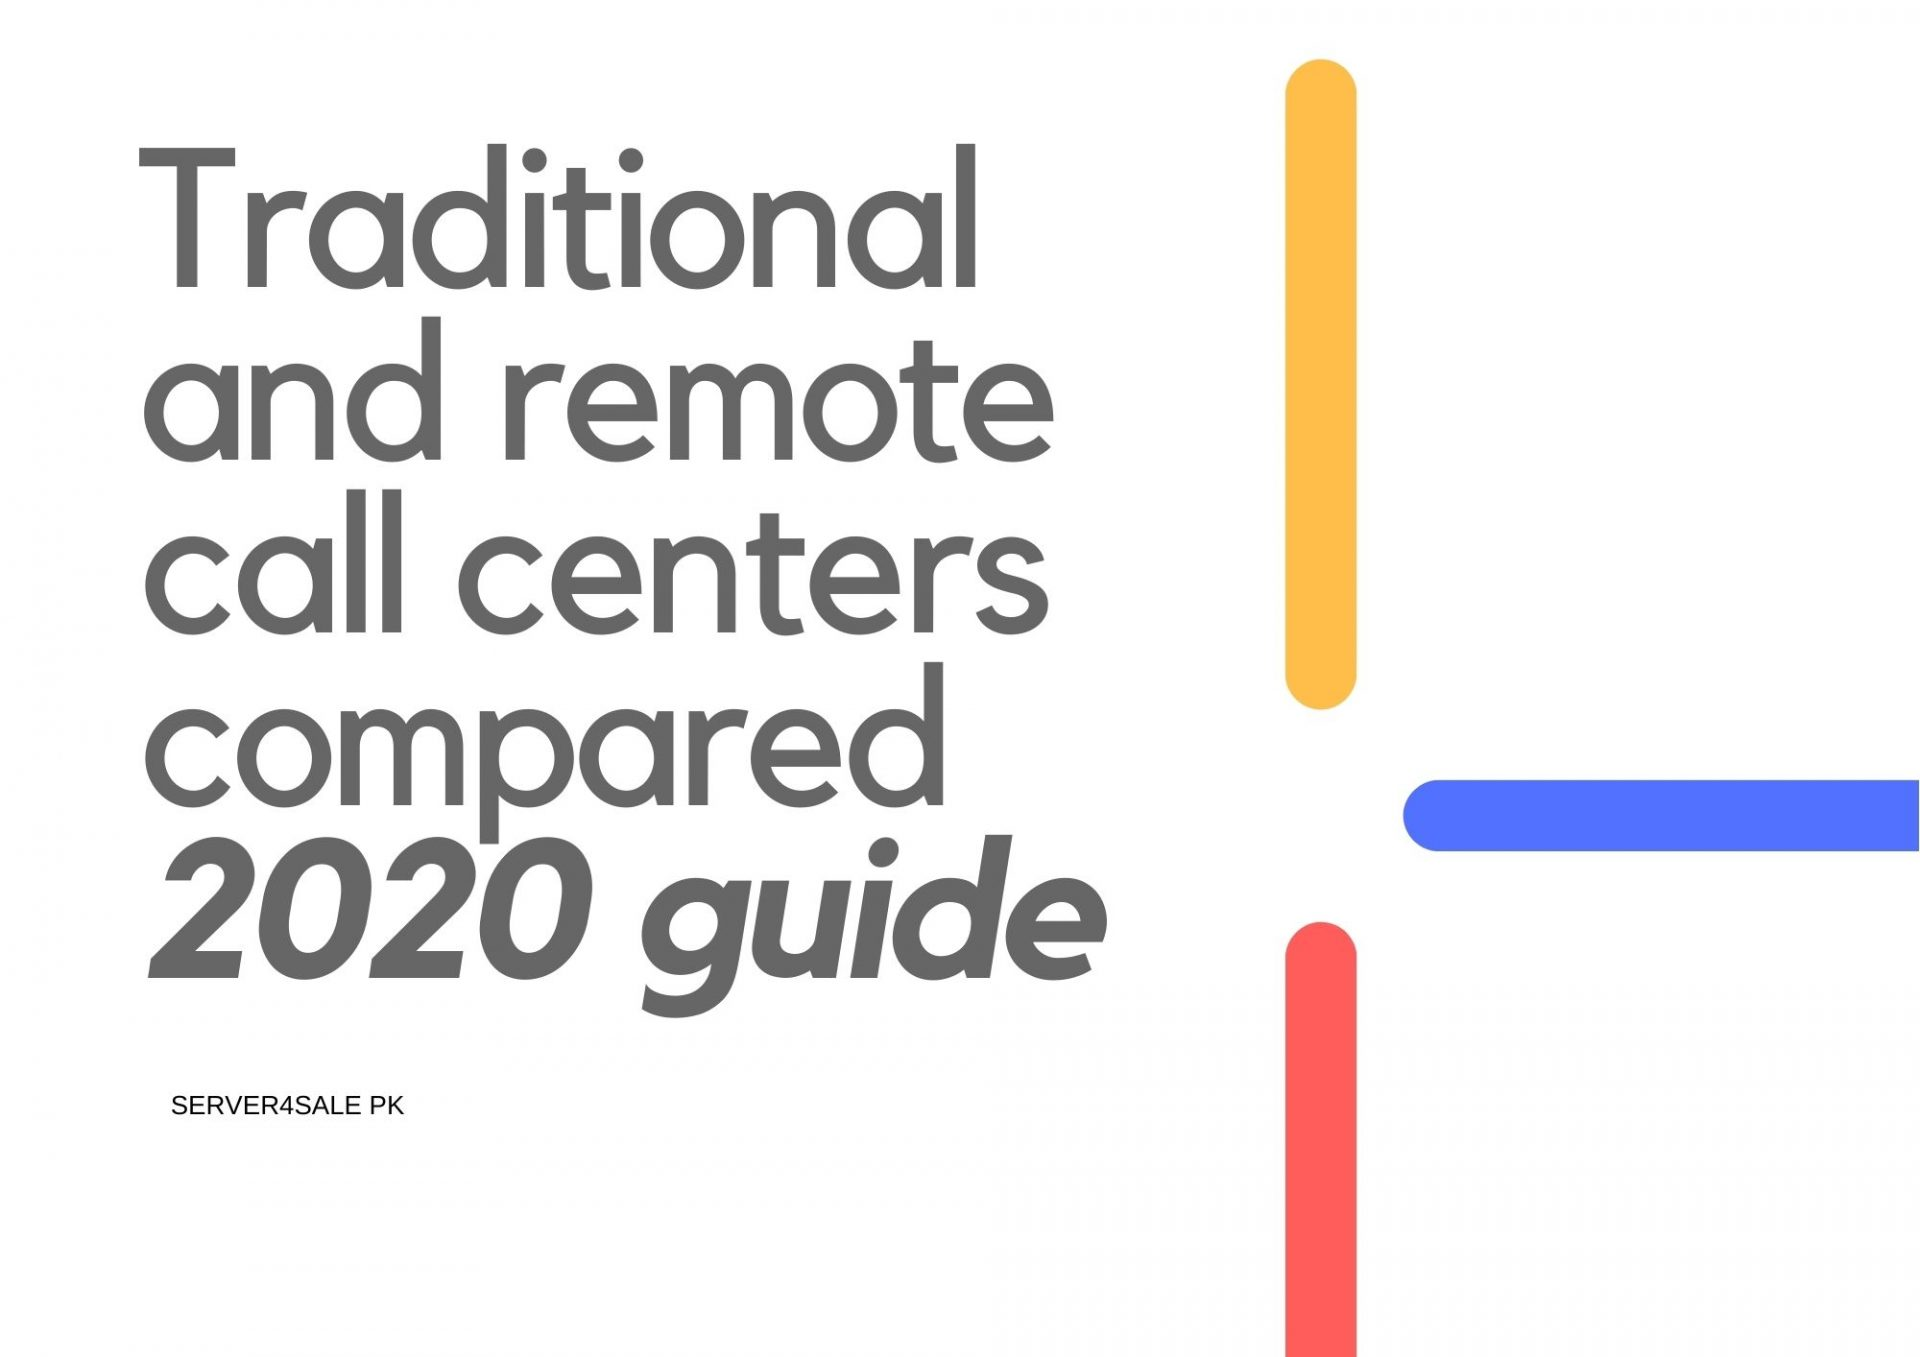 Traditional and remote call centers compared- 2020 guide